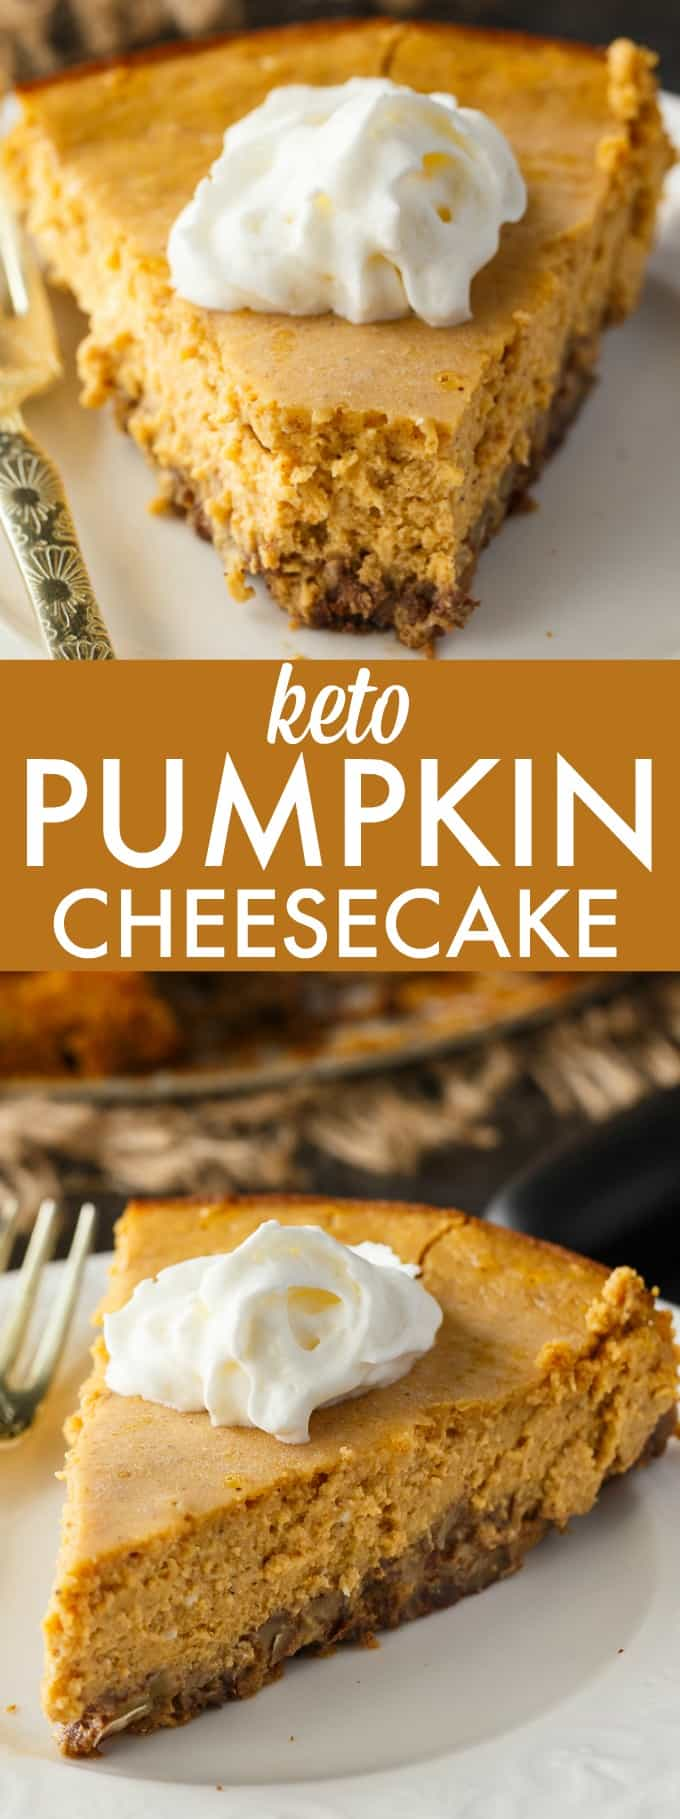 Keto Pumpkin Cheesecake - Rich and creamy! Enjoy this easy keto dessert guilt-free. Each bite is pure pumpkin heaven.